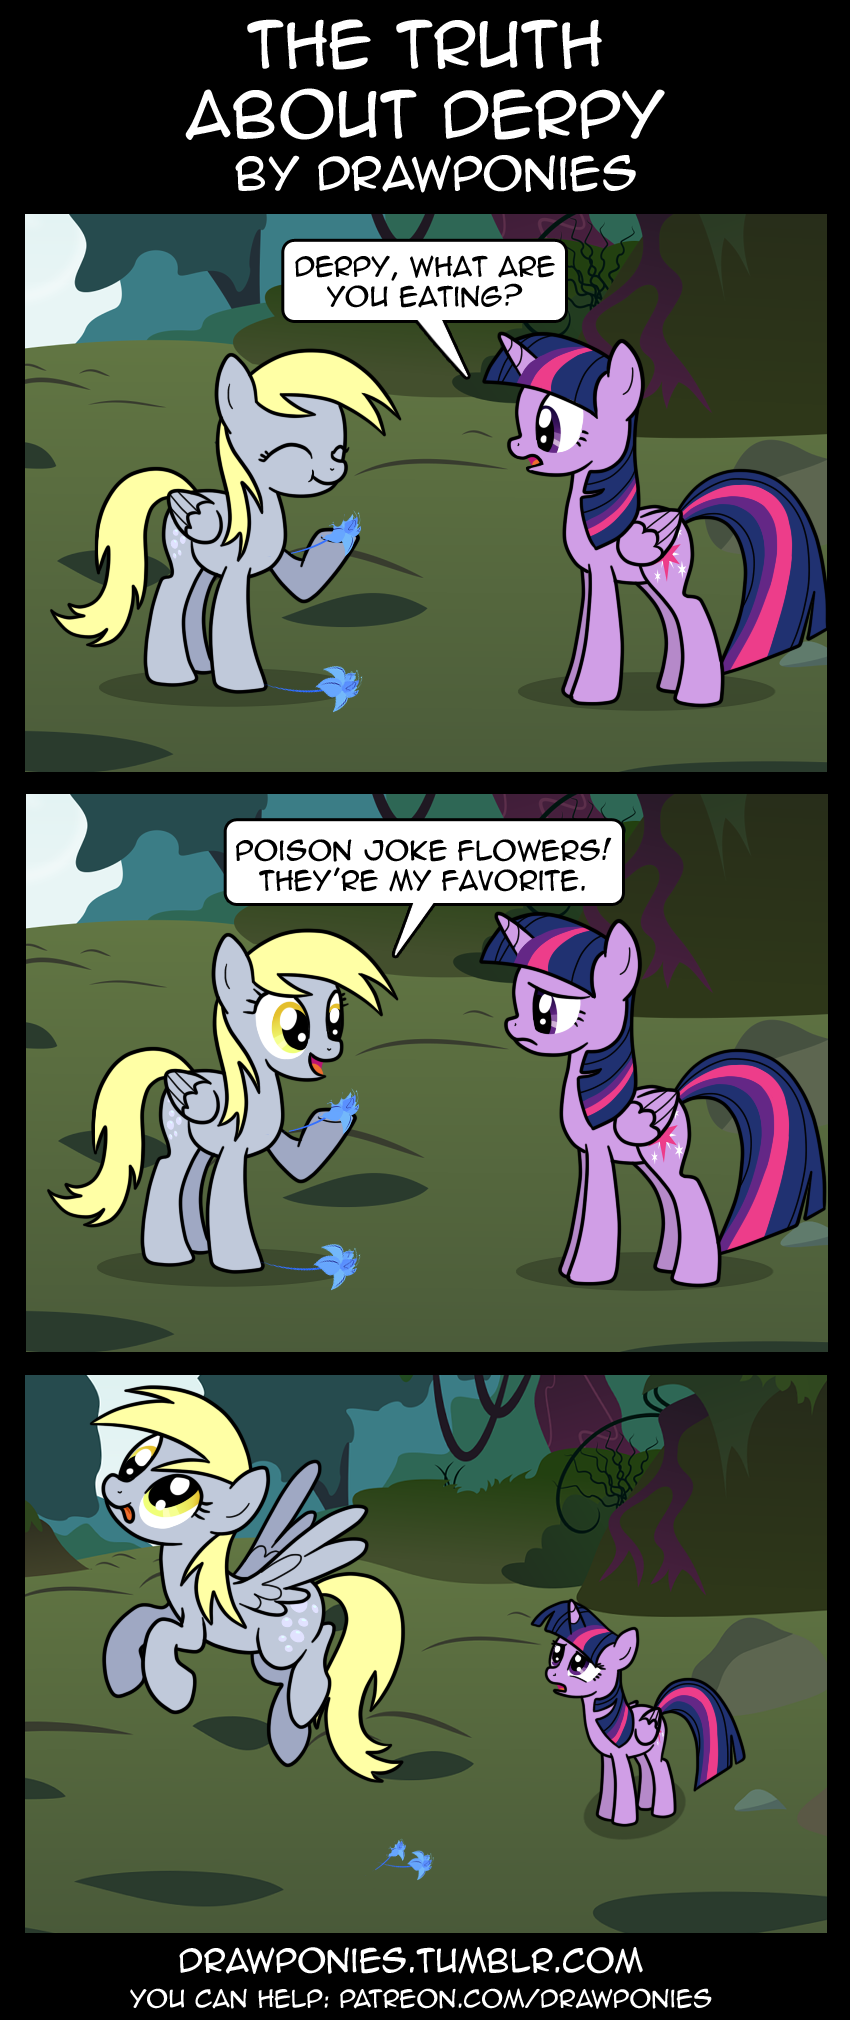 the truth about derpy by drawponies-d8cx